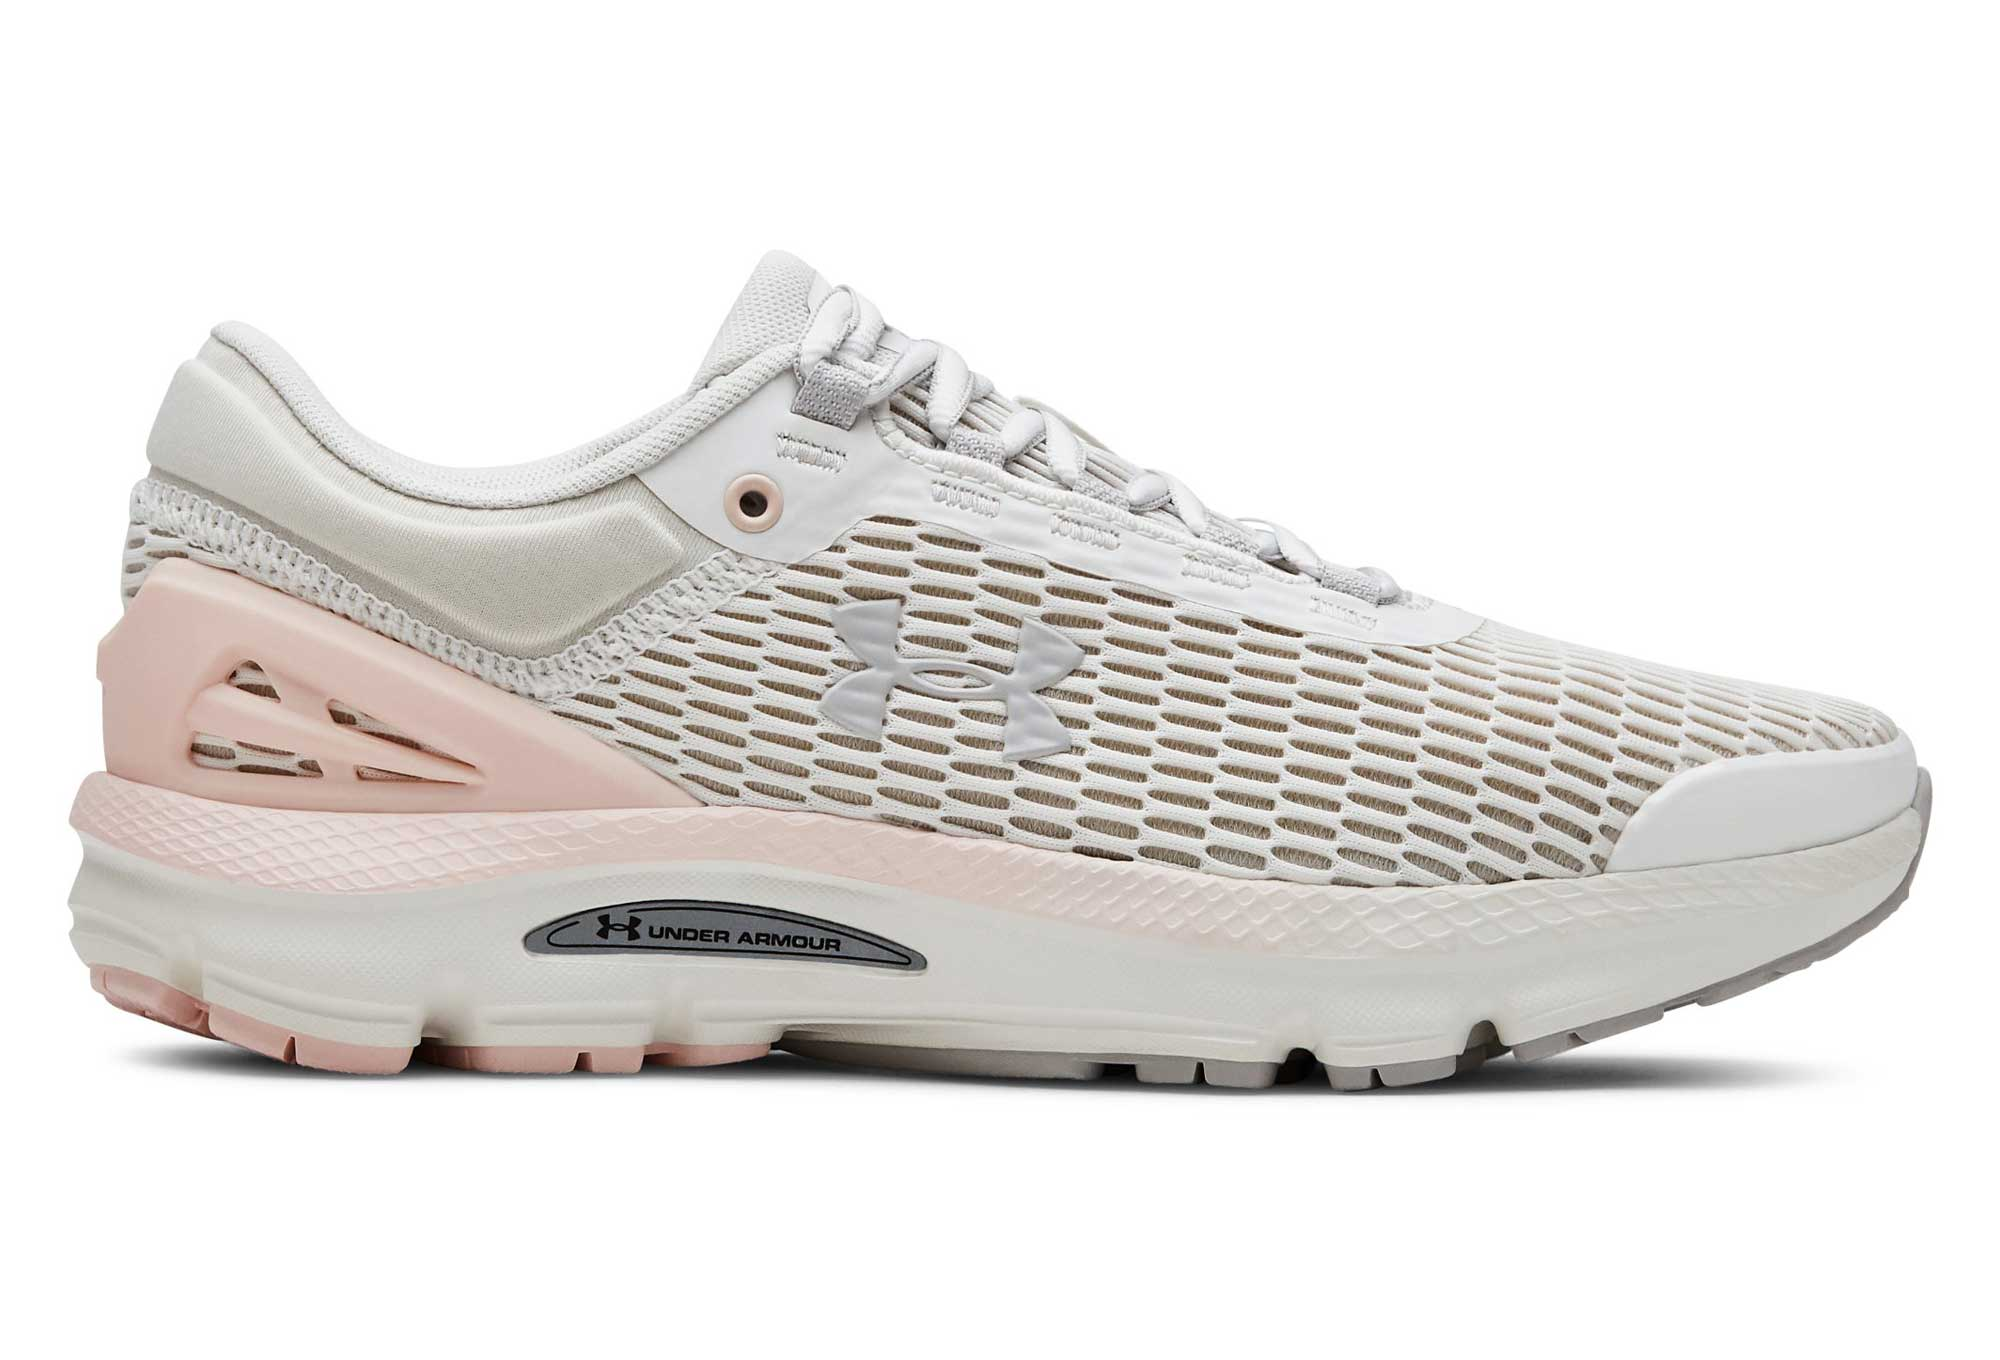 Chaussures de Running Femme Under Armour Charged Intake 3 Blanc Rose